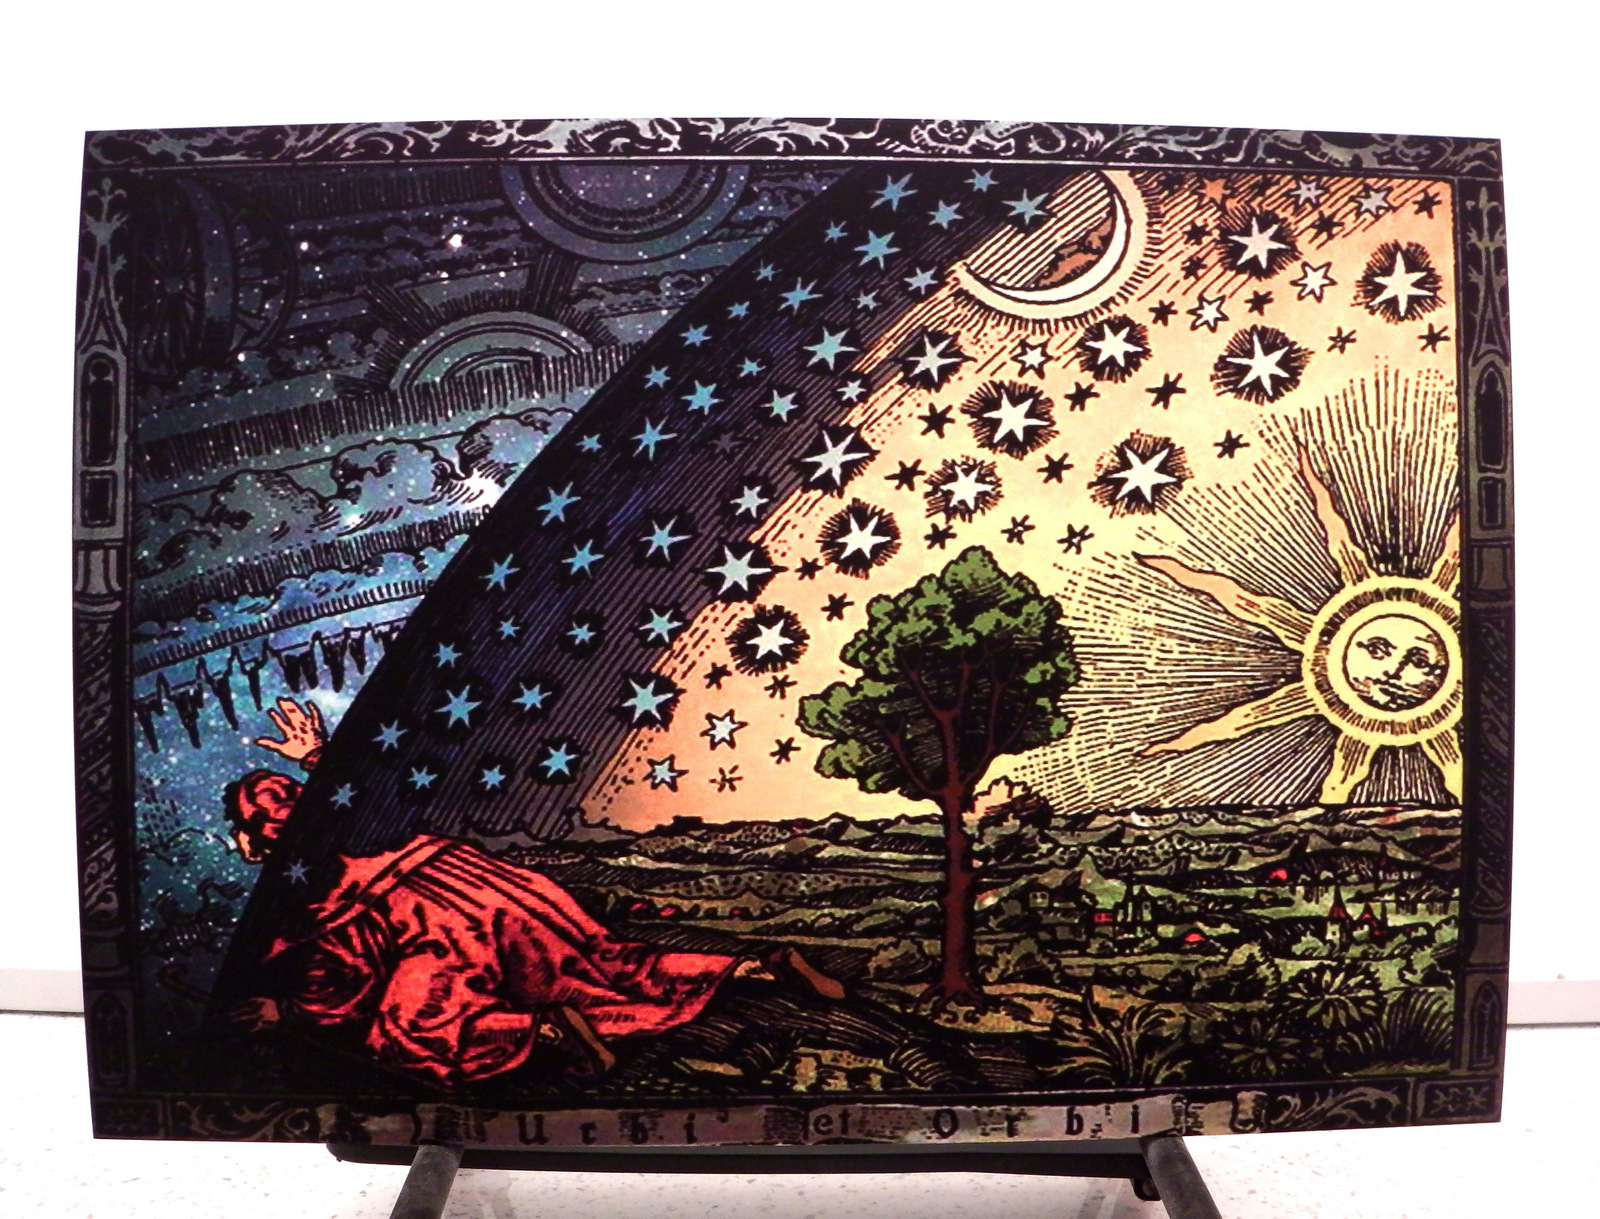 The Flammarion Engraving 1888 (A3)